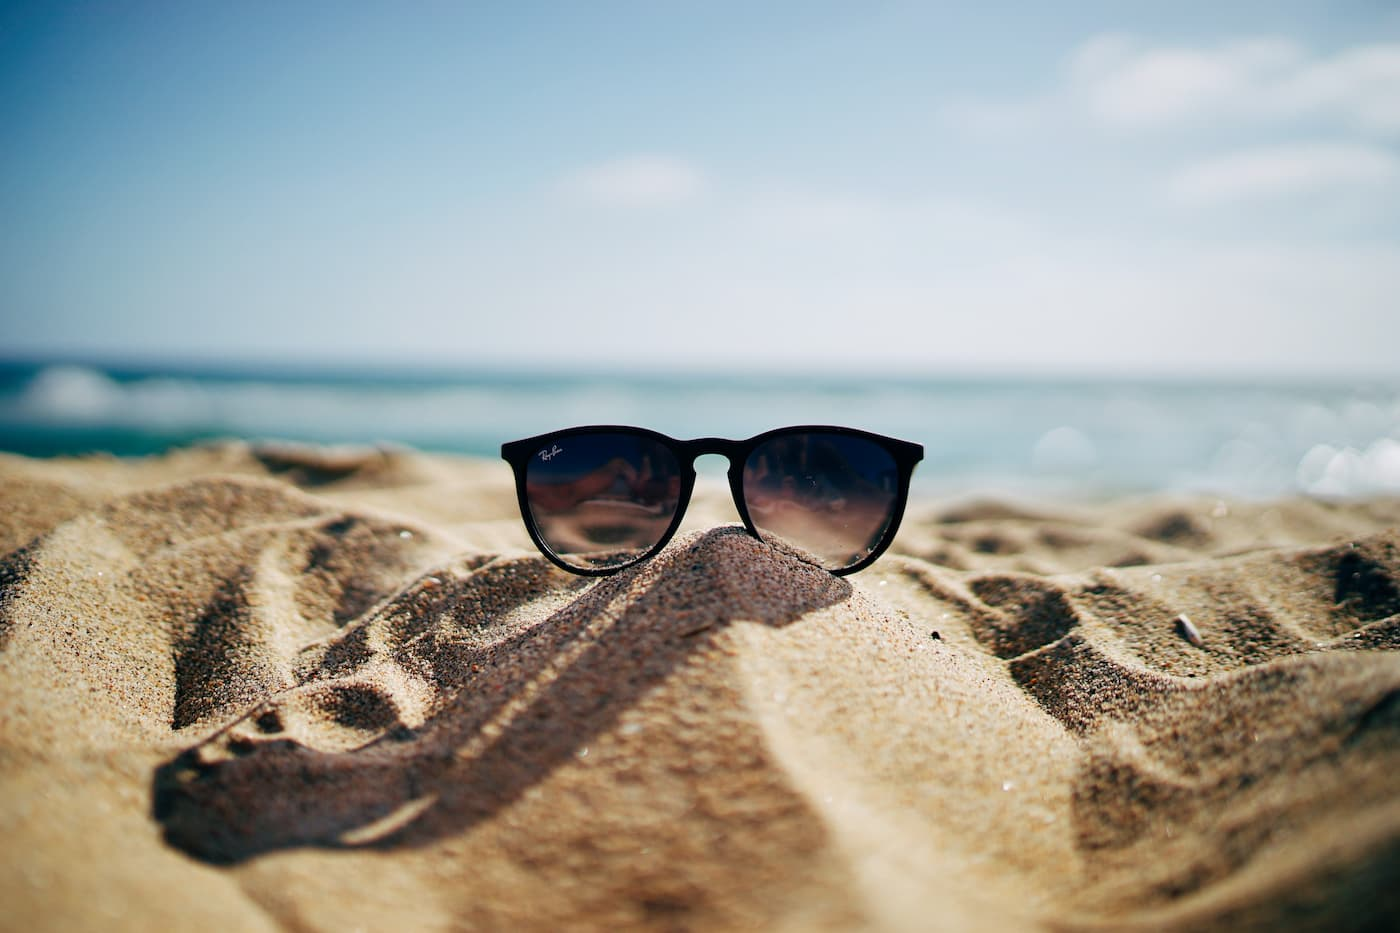 a pair of ray ban sunglasses on the beach in the summer sun